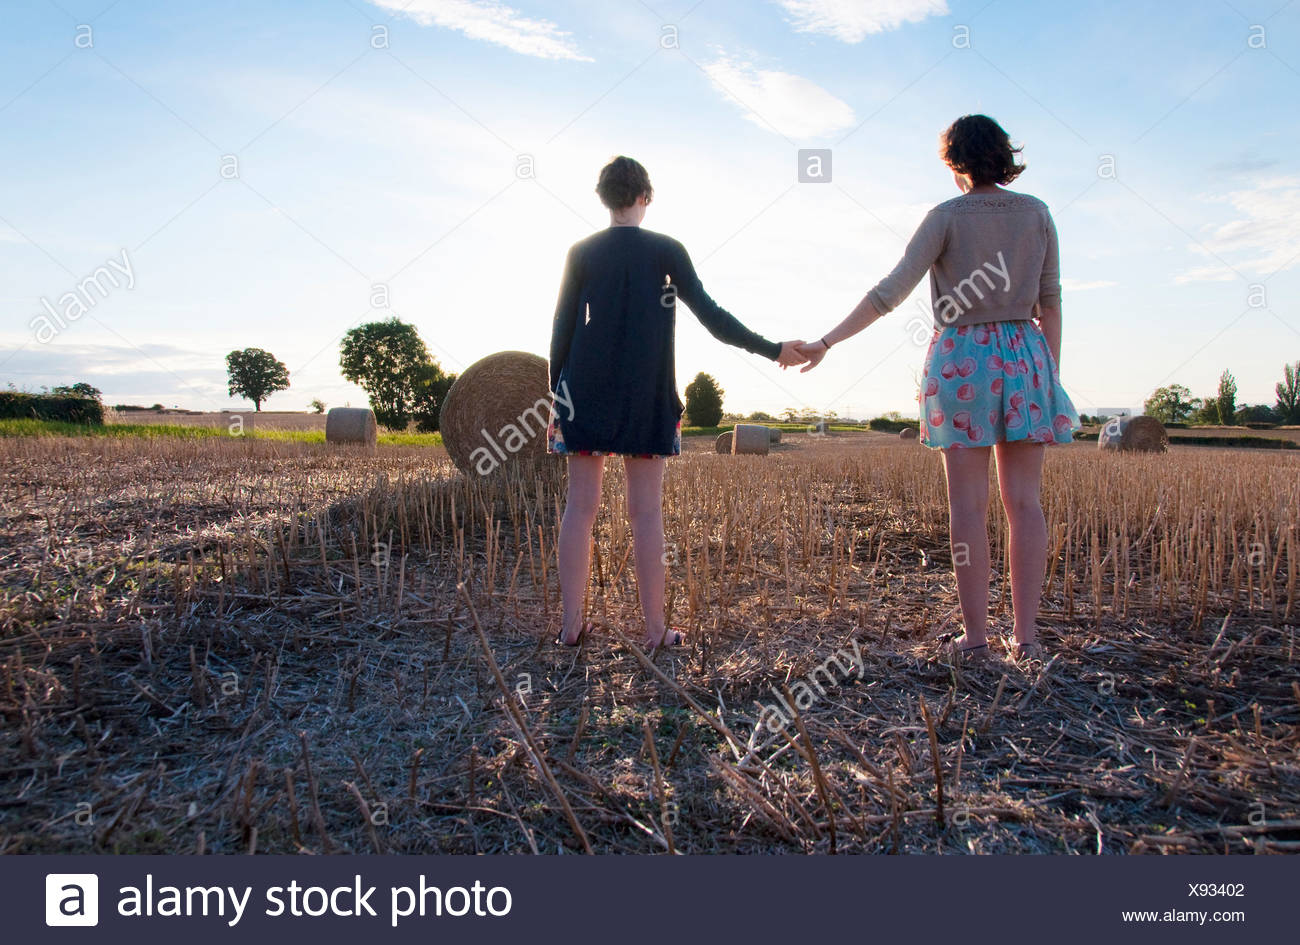 Girls holding hands in hay field - Stock Image